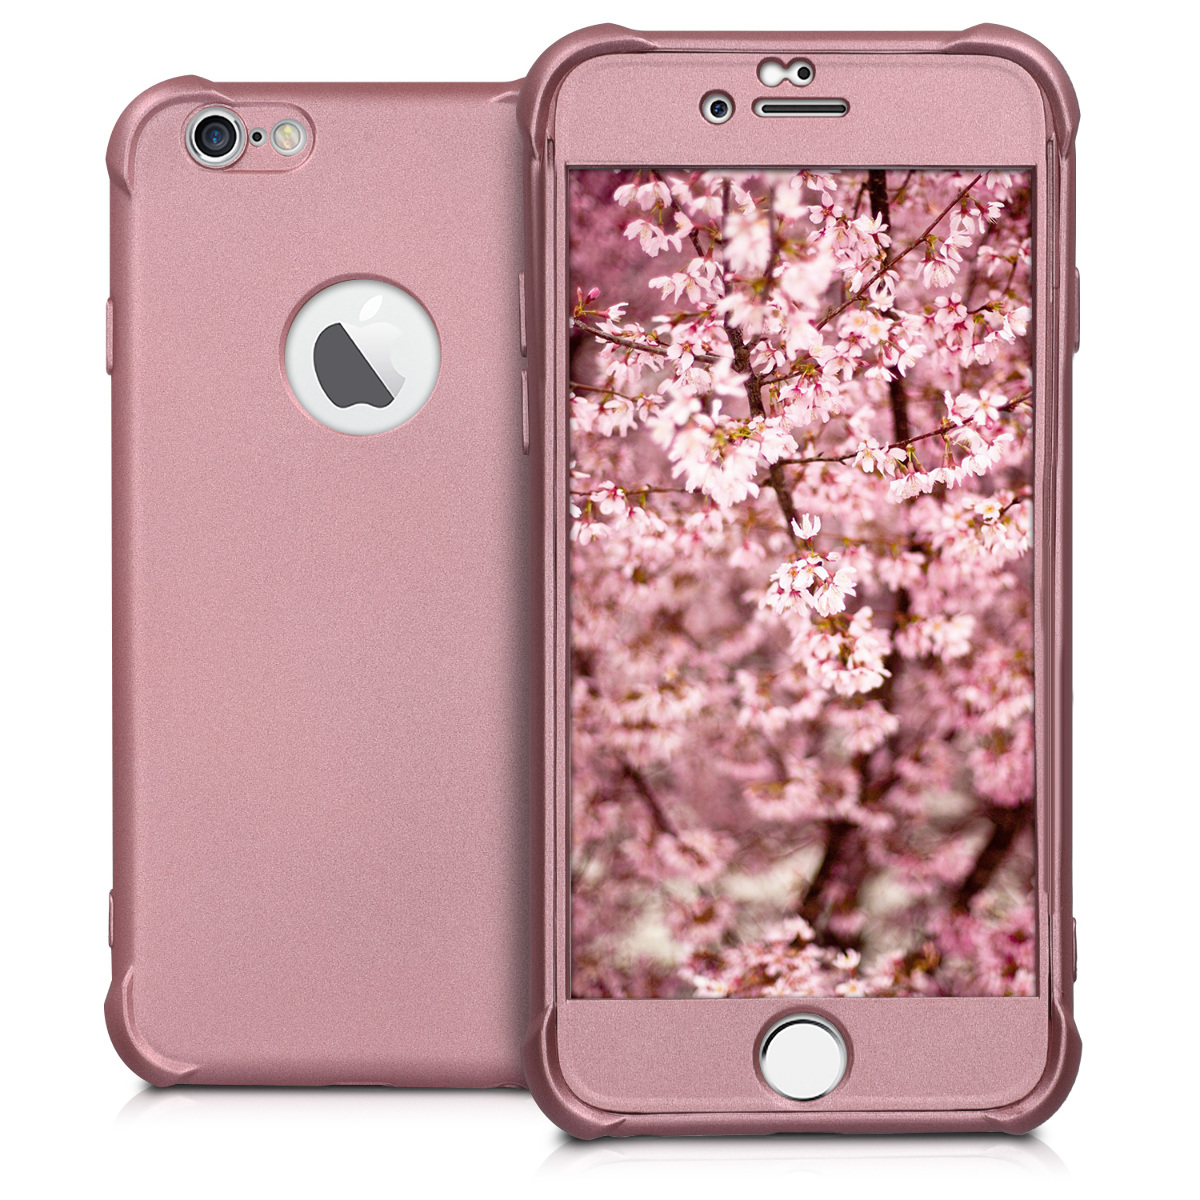 kwmobile-TPU-HOUSSE-APPLE-IPHONE-6-6S-ETUI-PORTABLE-HOUSSE-DE-PROTECTION-ETUI